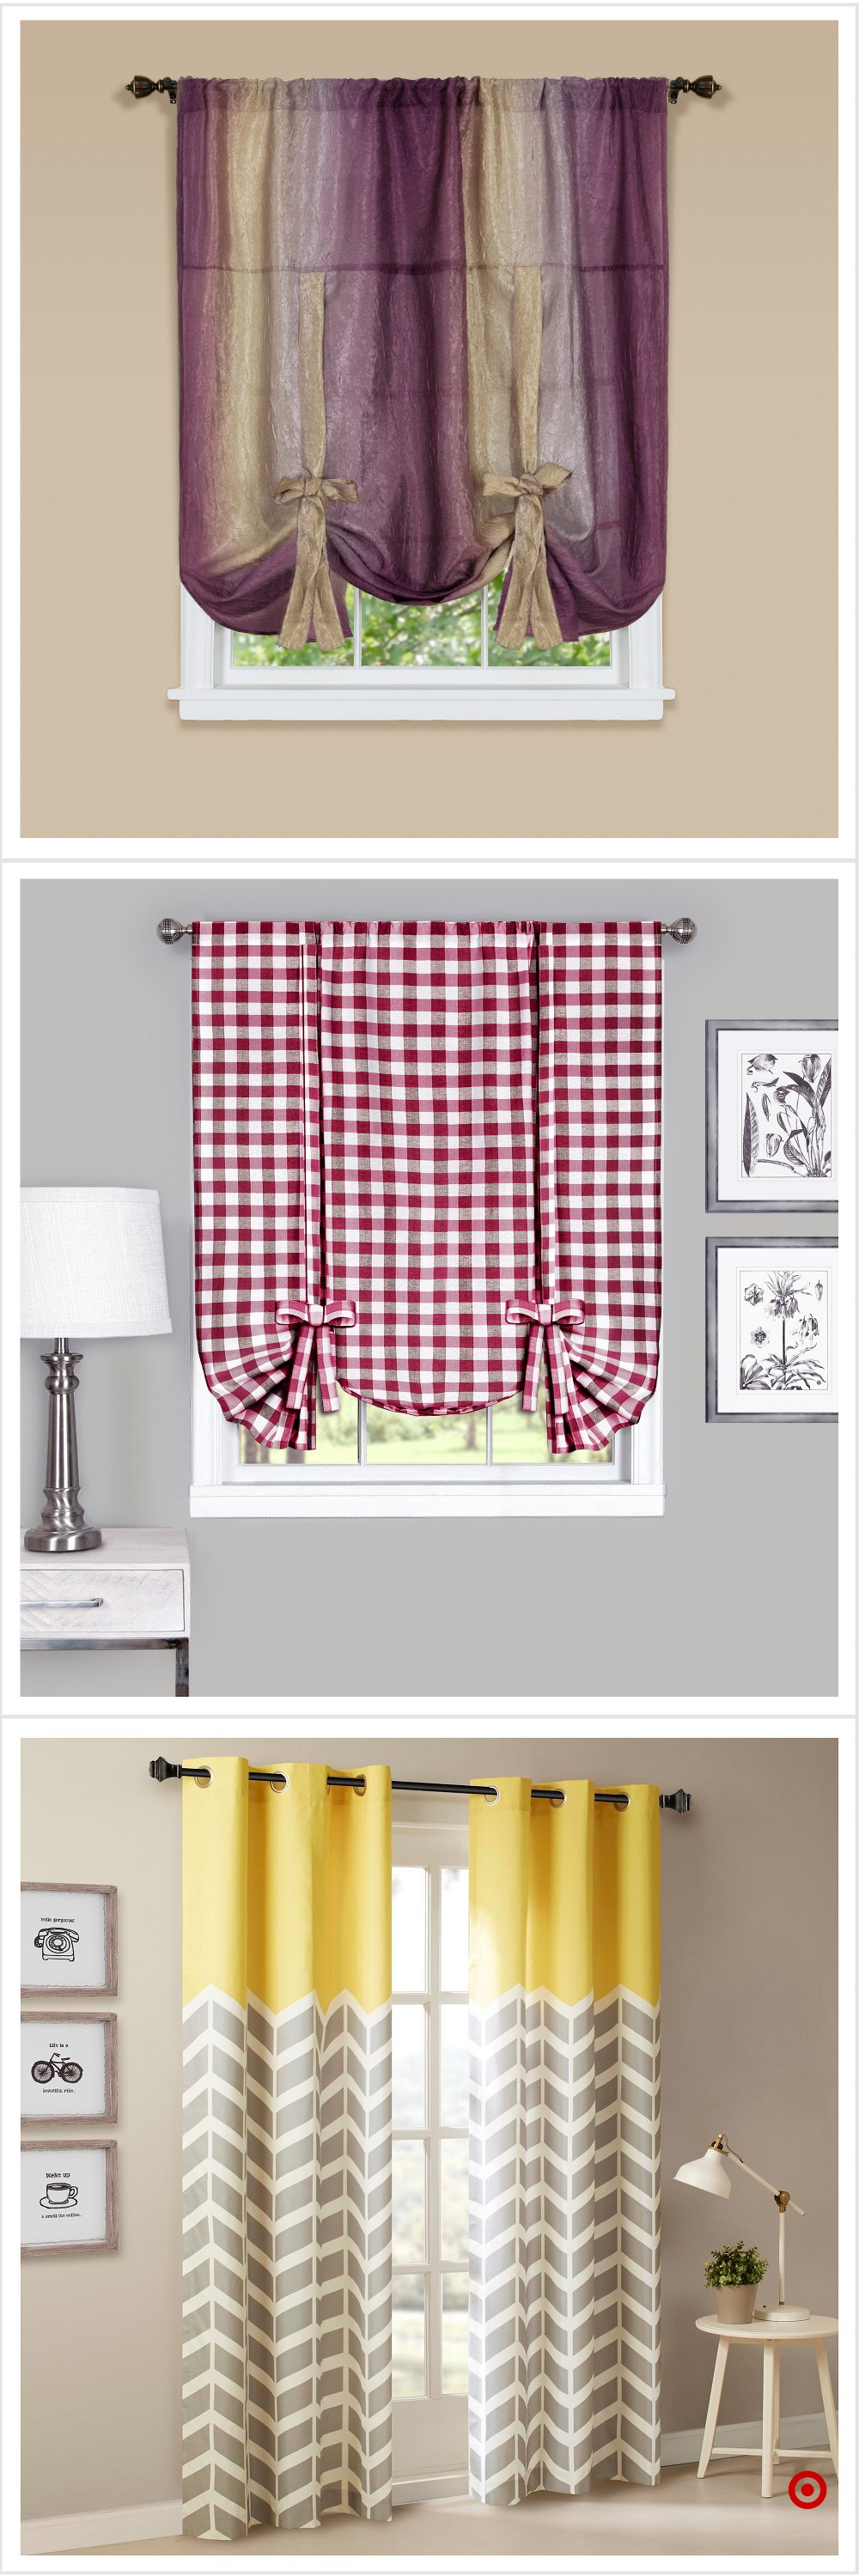 Shop Target For Panel Window Shade You Will Love At Great